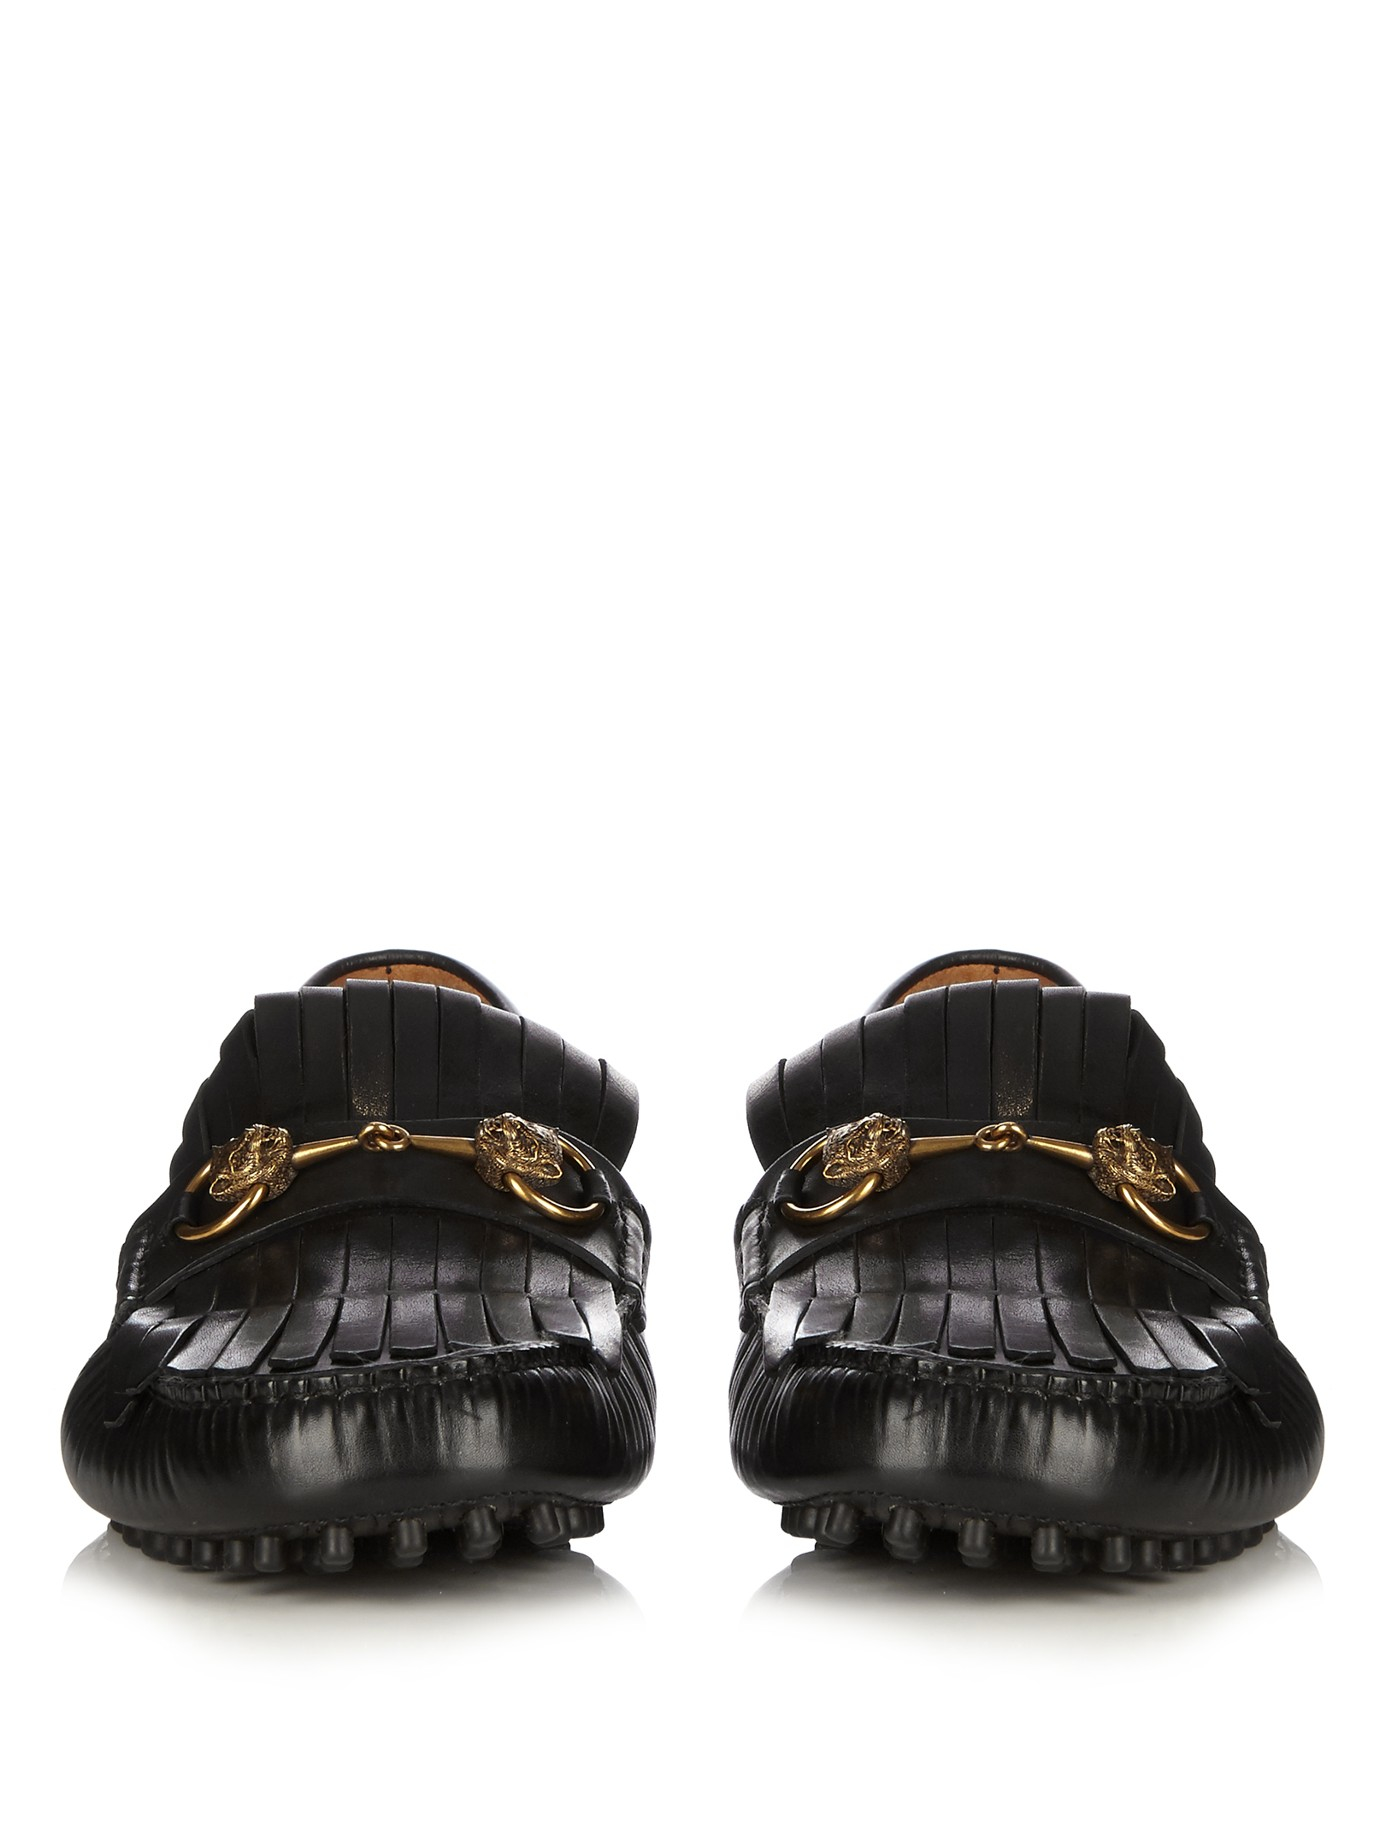 b50af0f9e5f Lyst - Gucci Road Jump Fringed Leather Loafers in Black for Men